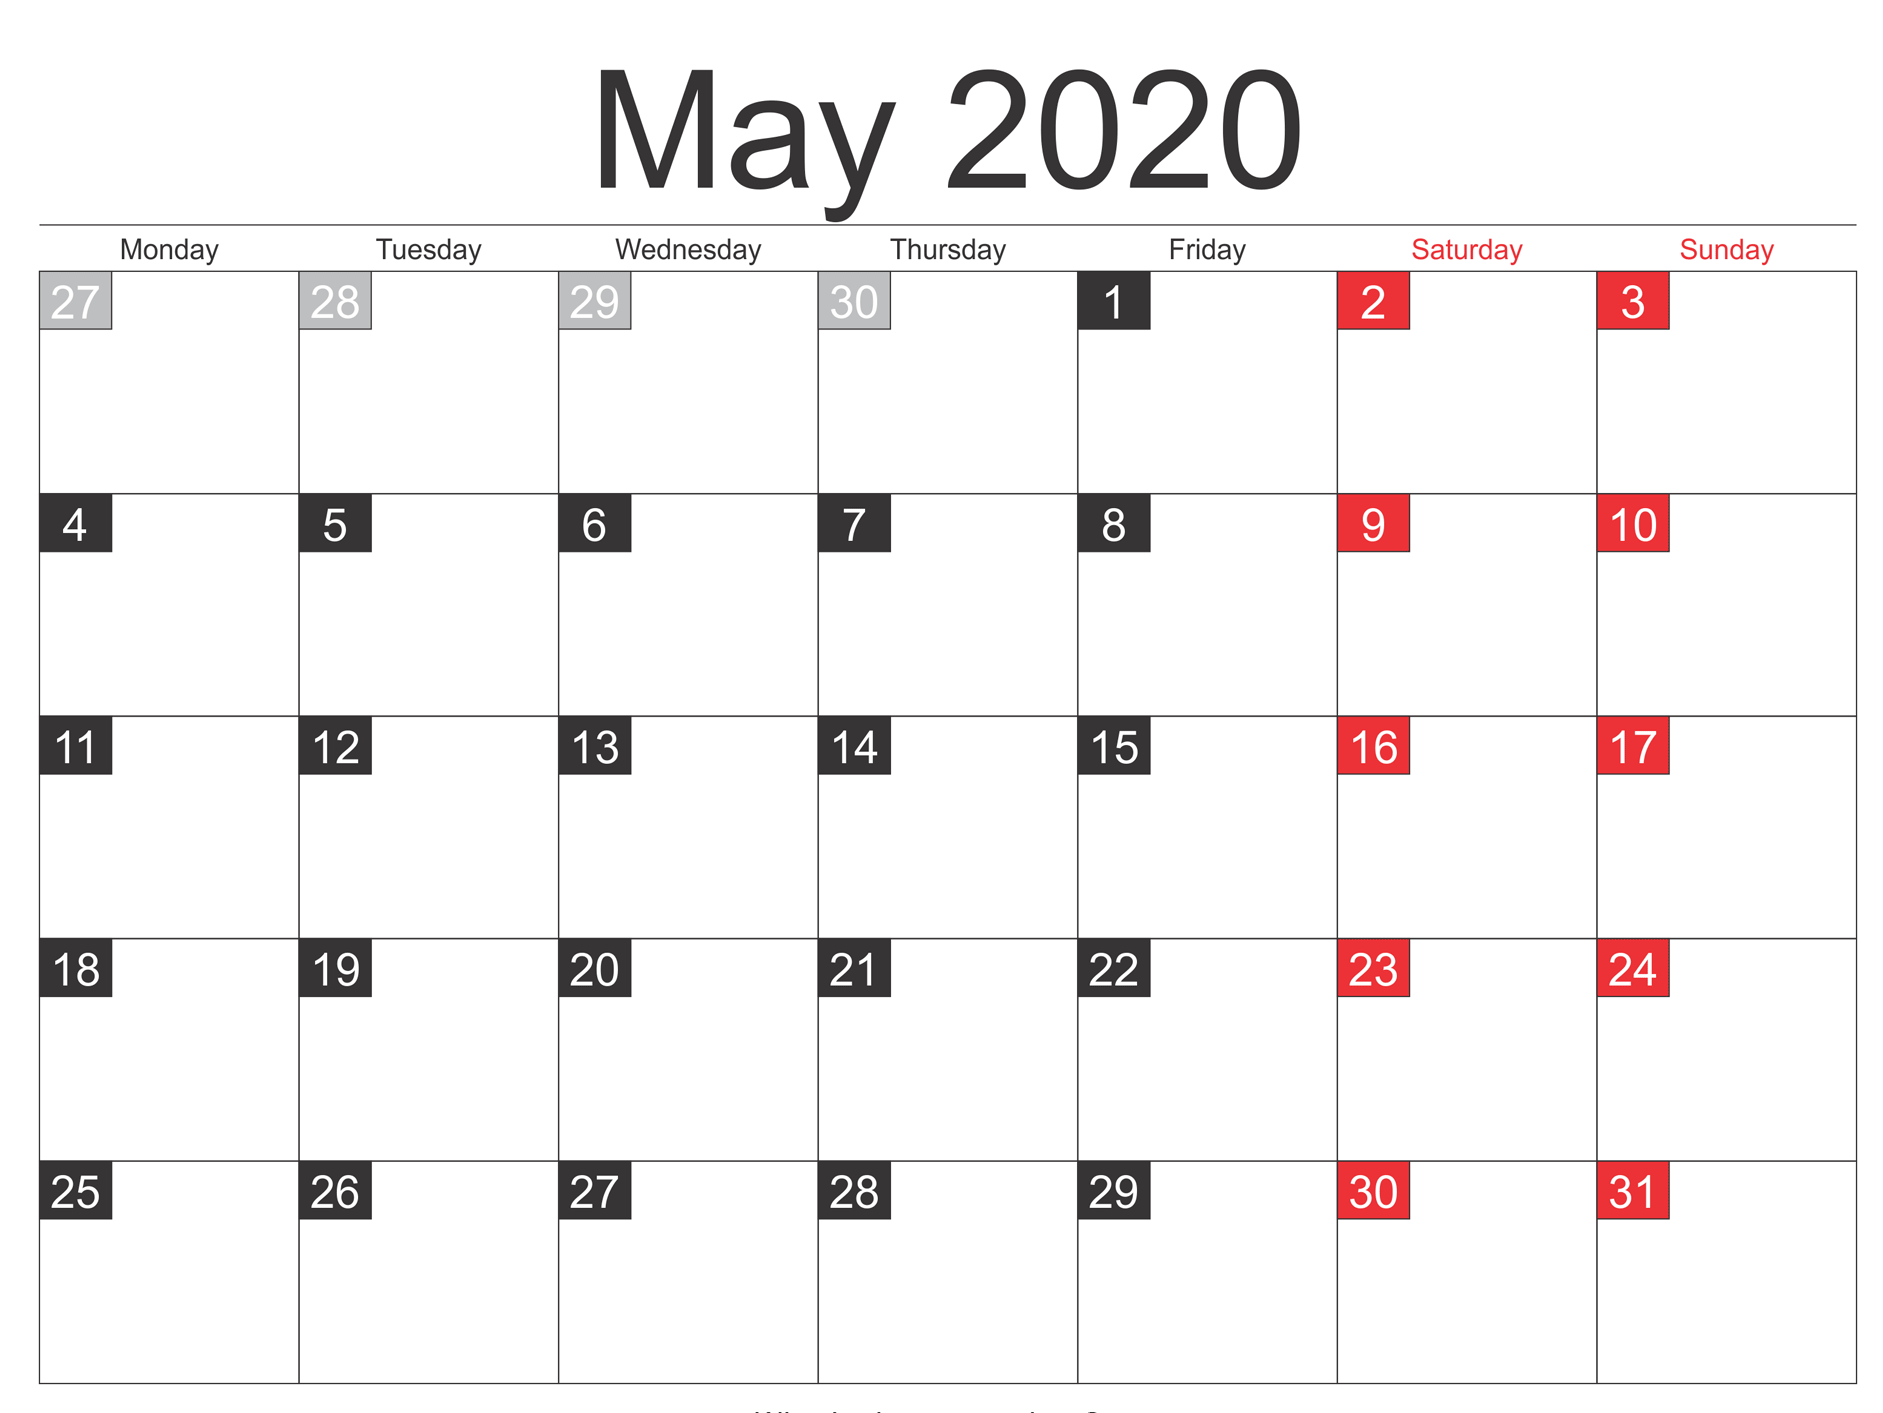 Online Blank May 2020 Calendar Template To Print 5